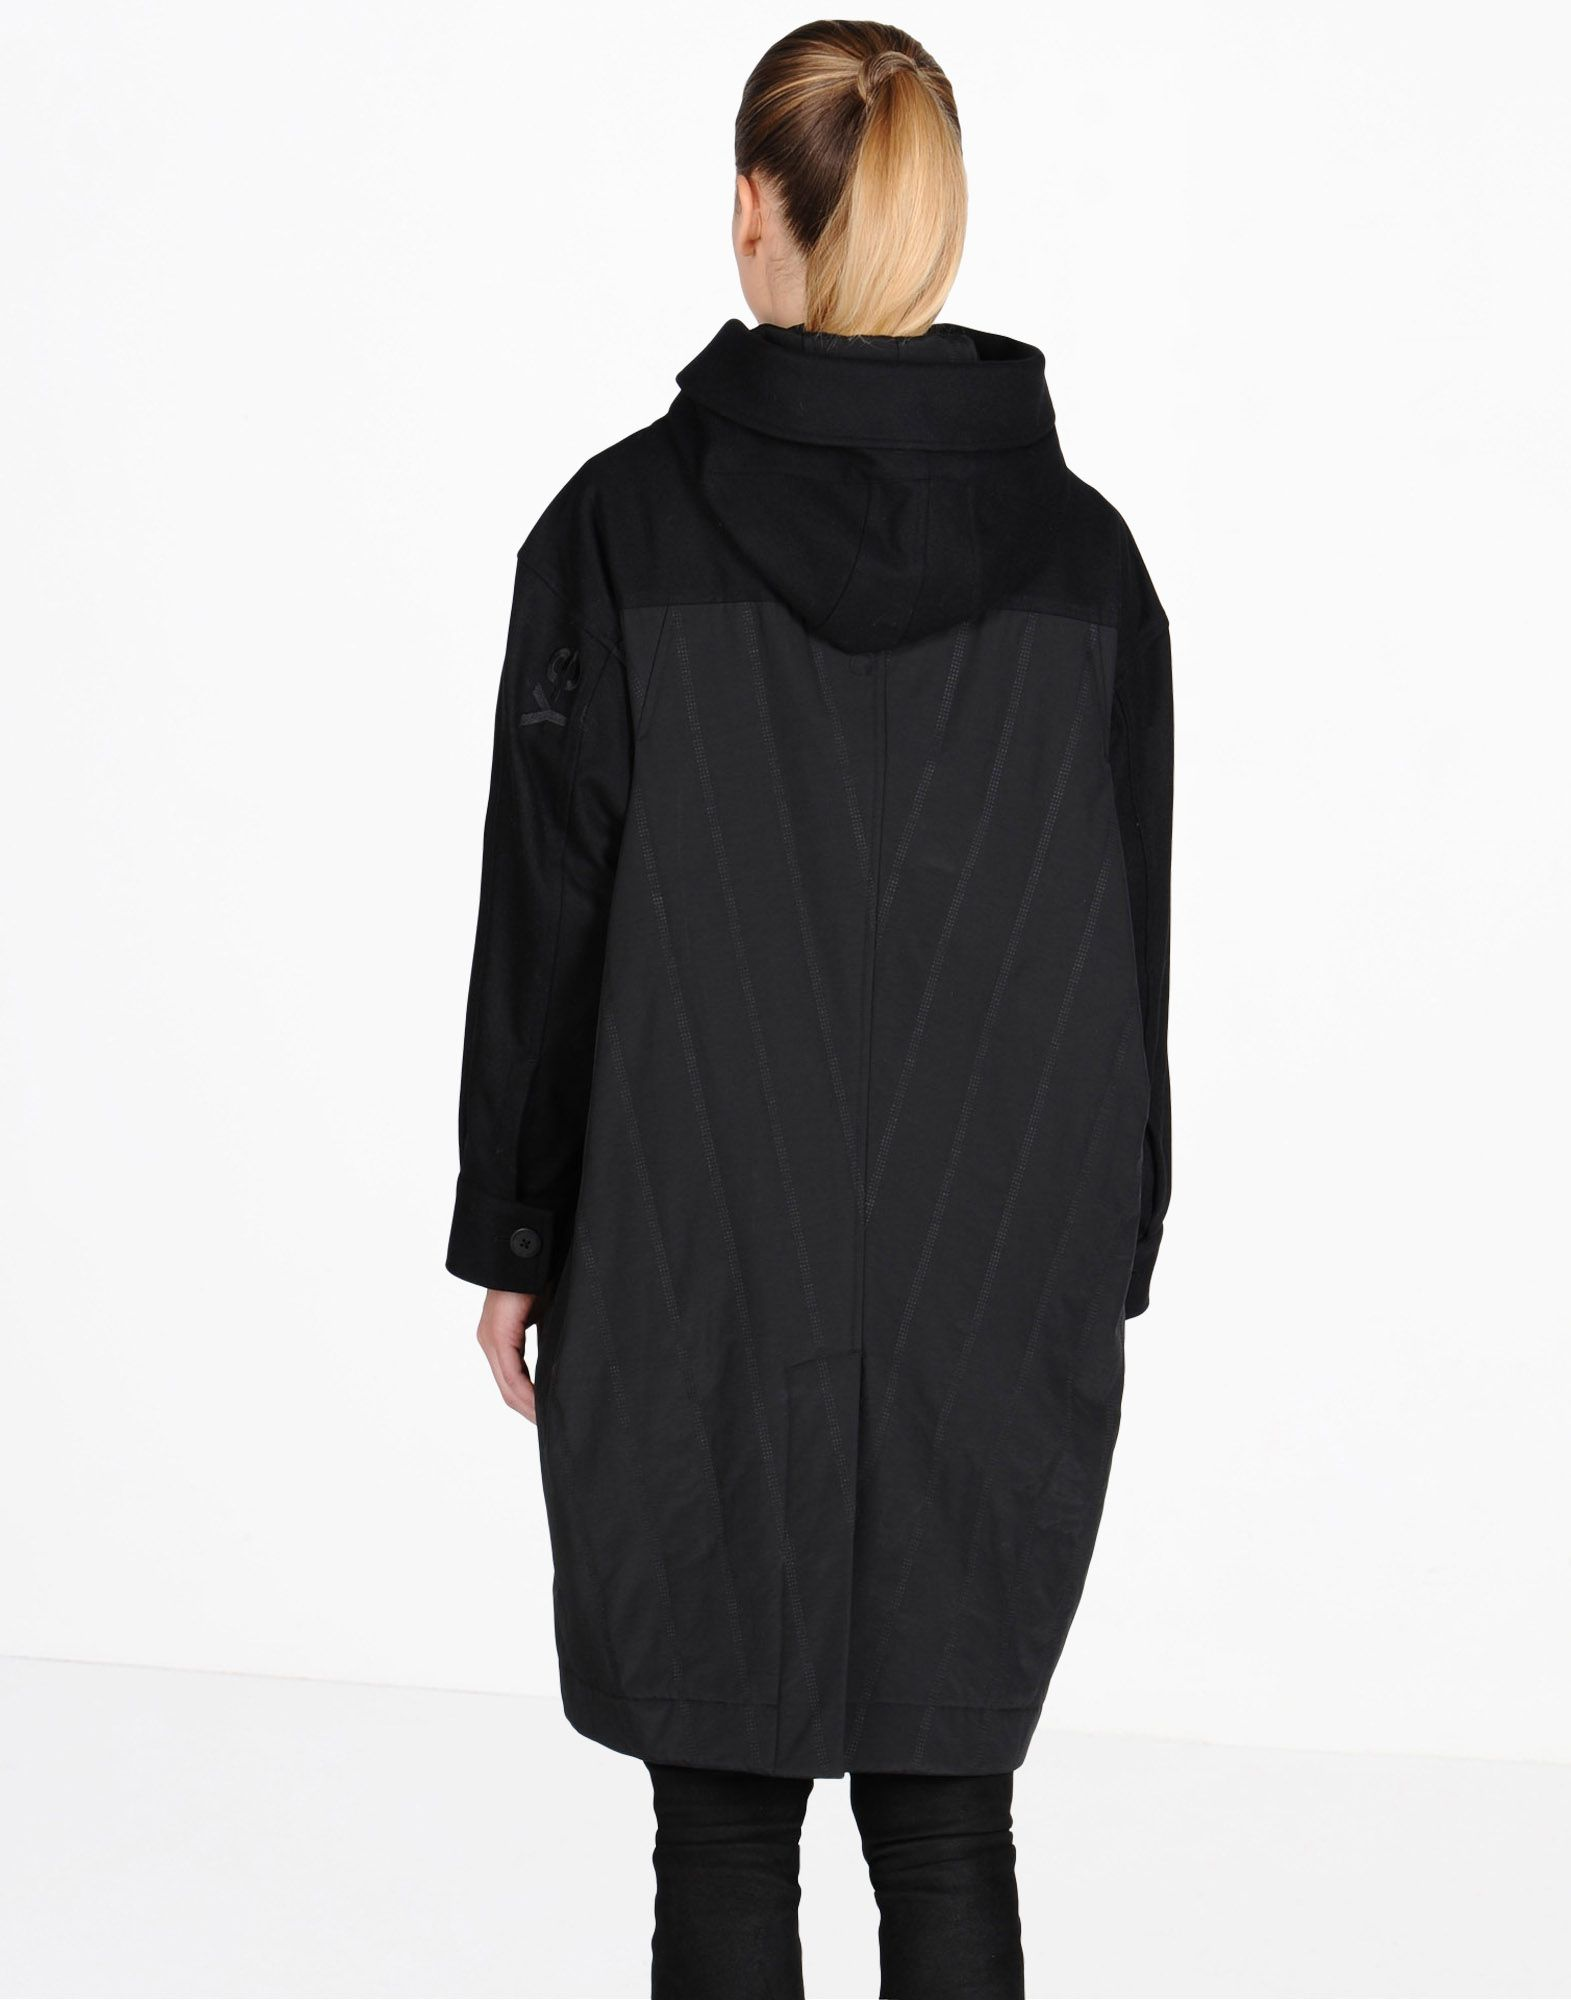 Y 3 ULTRA LIGHT PARKA for Women | Adidas Y-3 Official Store